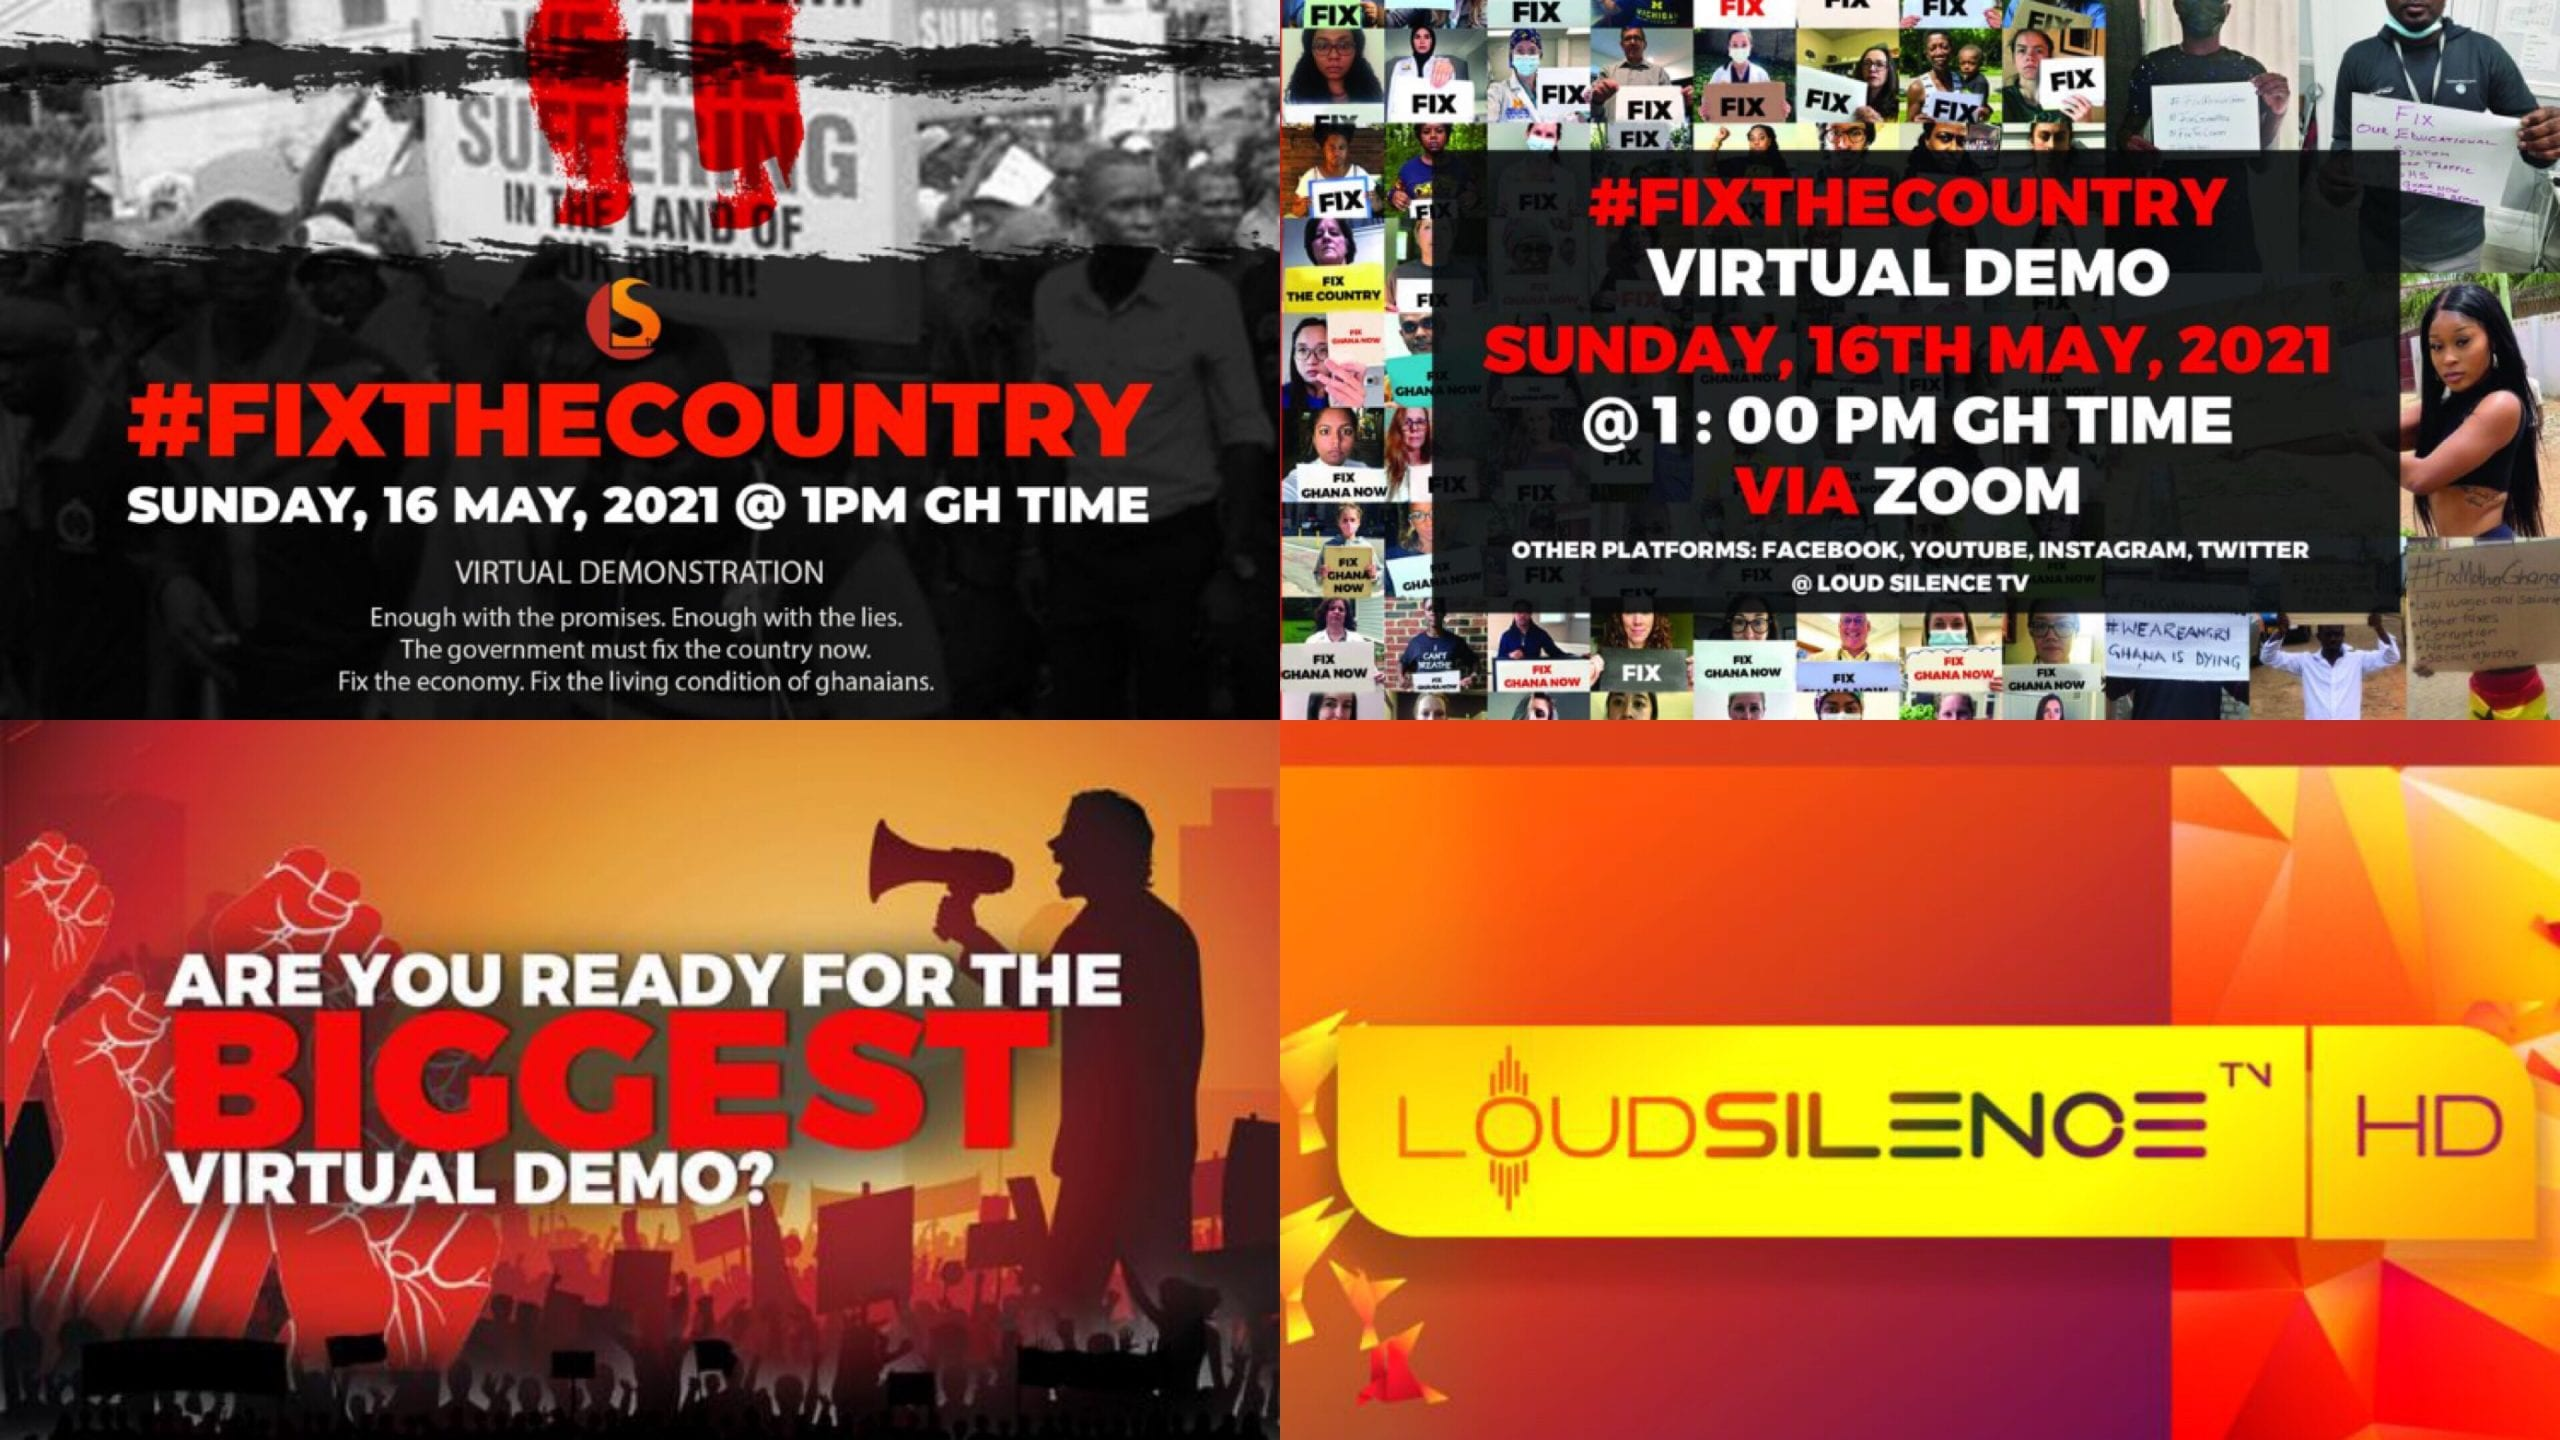 History Made:Kevin Taylor CEO Of Loud Silence Media, Has Organized The Biggest Live Virtual Demonstration in Sub-Saharan Africa.